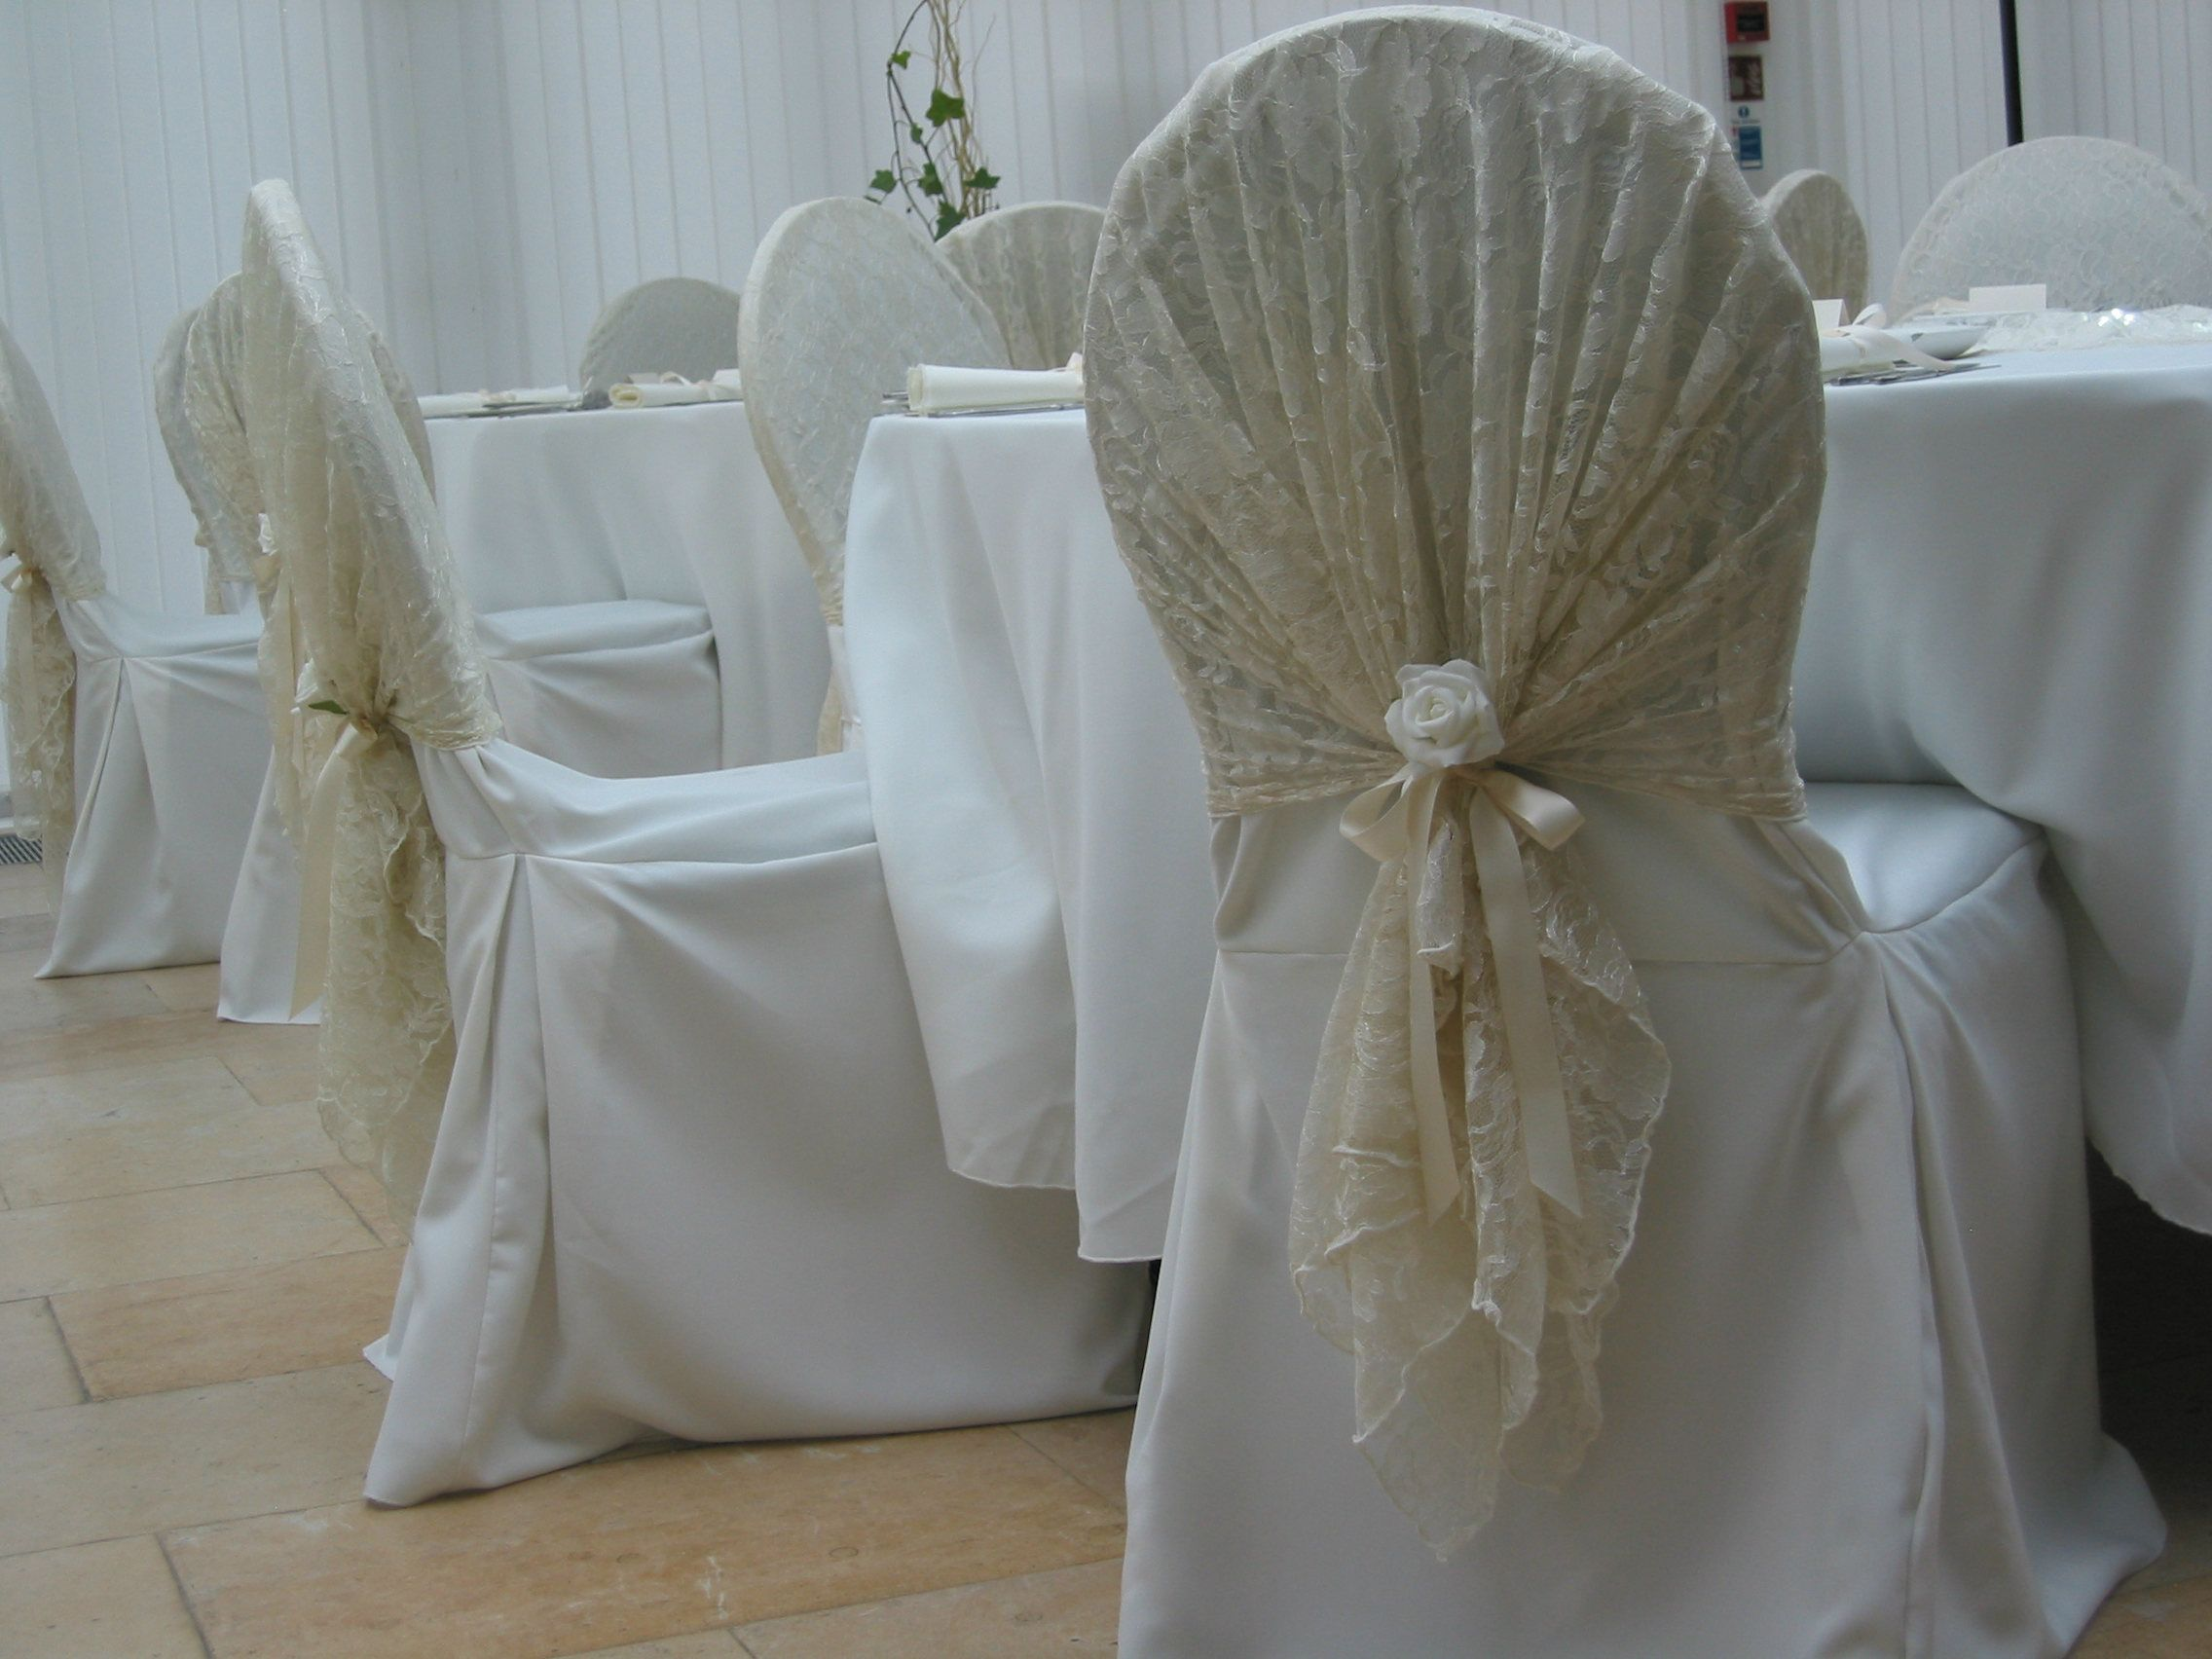 wedding chair covers and sashes for hire cool outdoor chairs vintage style lace hoods http weddingmarket